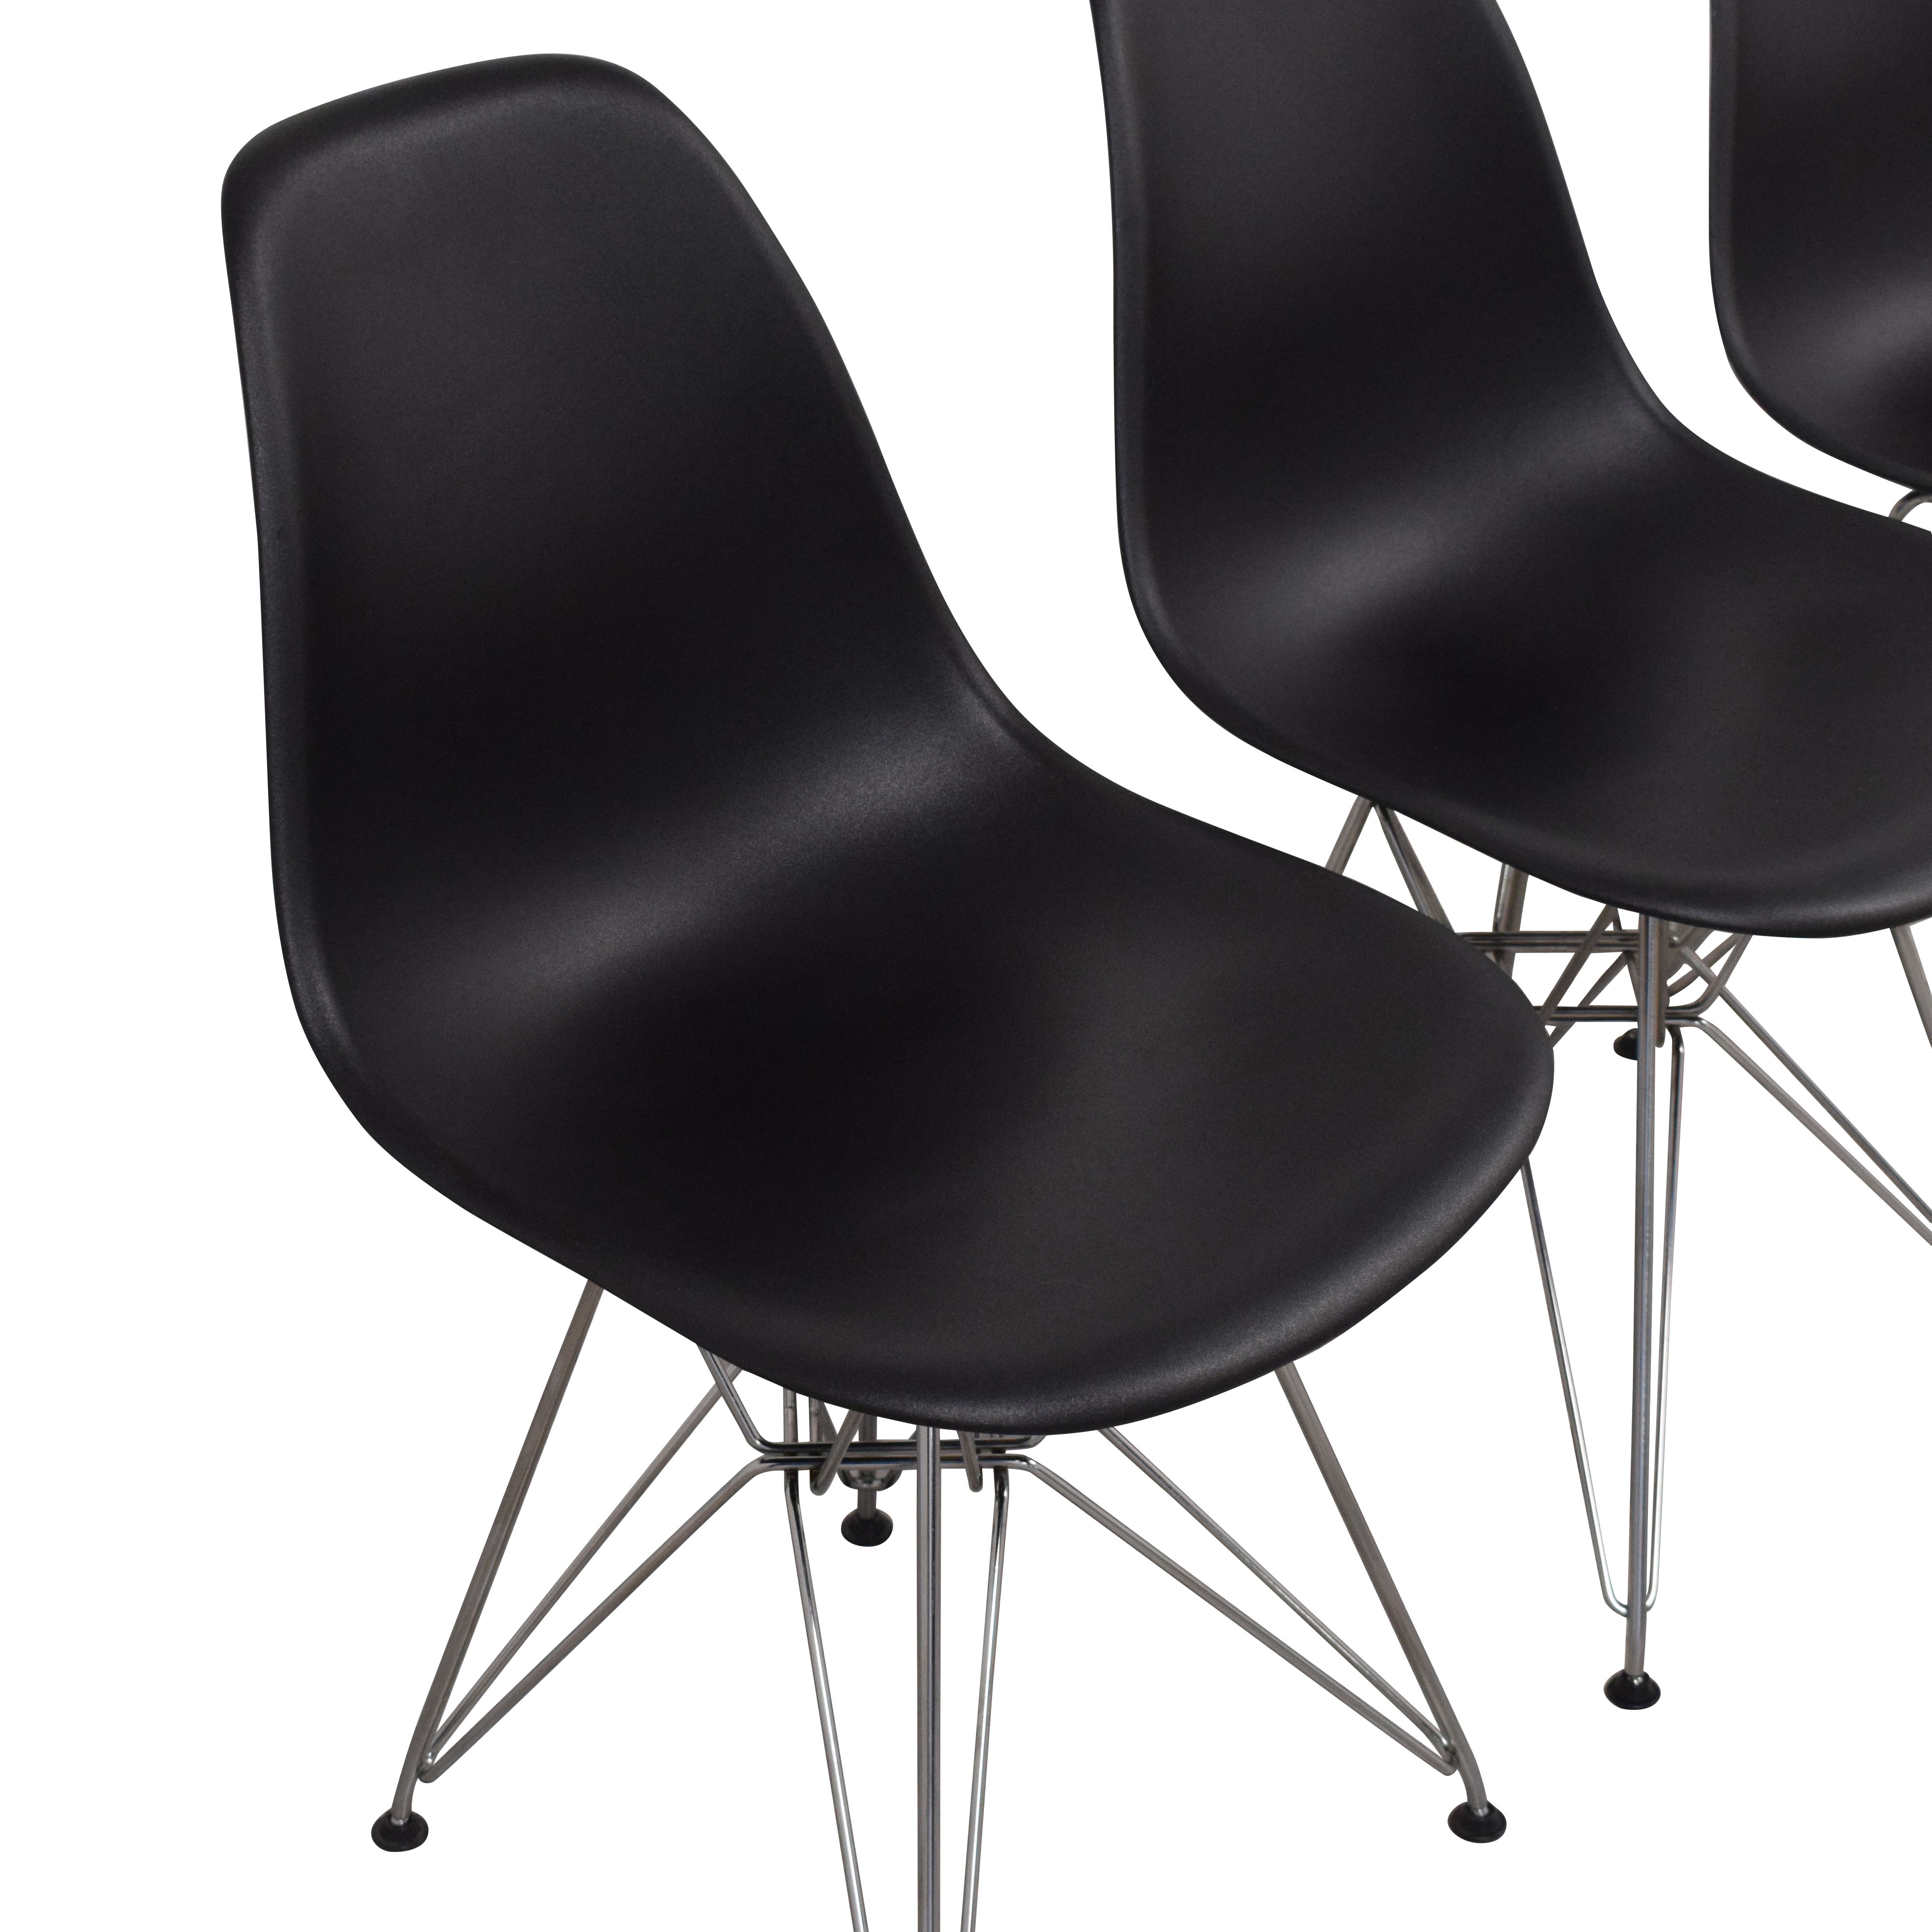 Herman Miller Eames Molded Plastic Wirebase Chairs / Accent Chairs